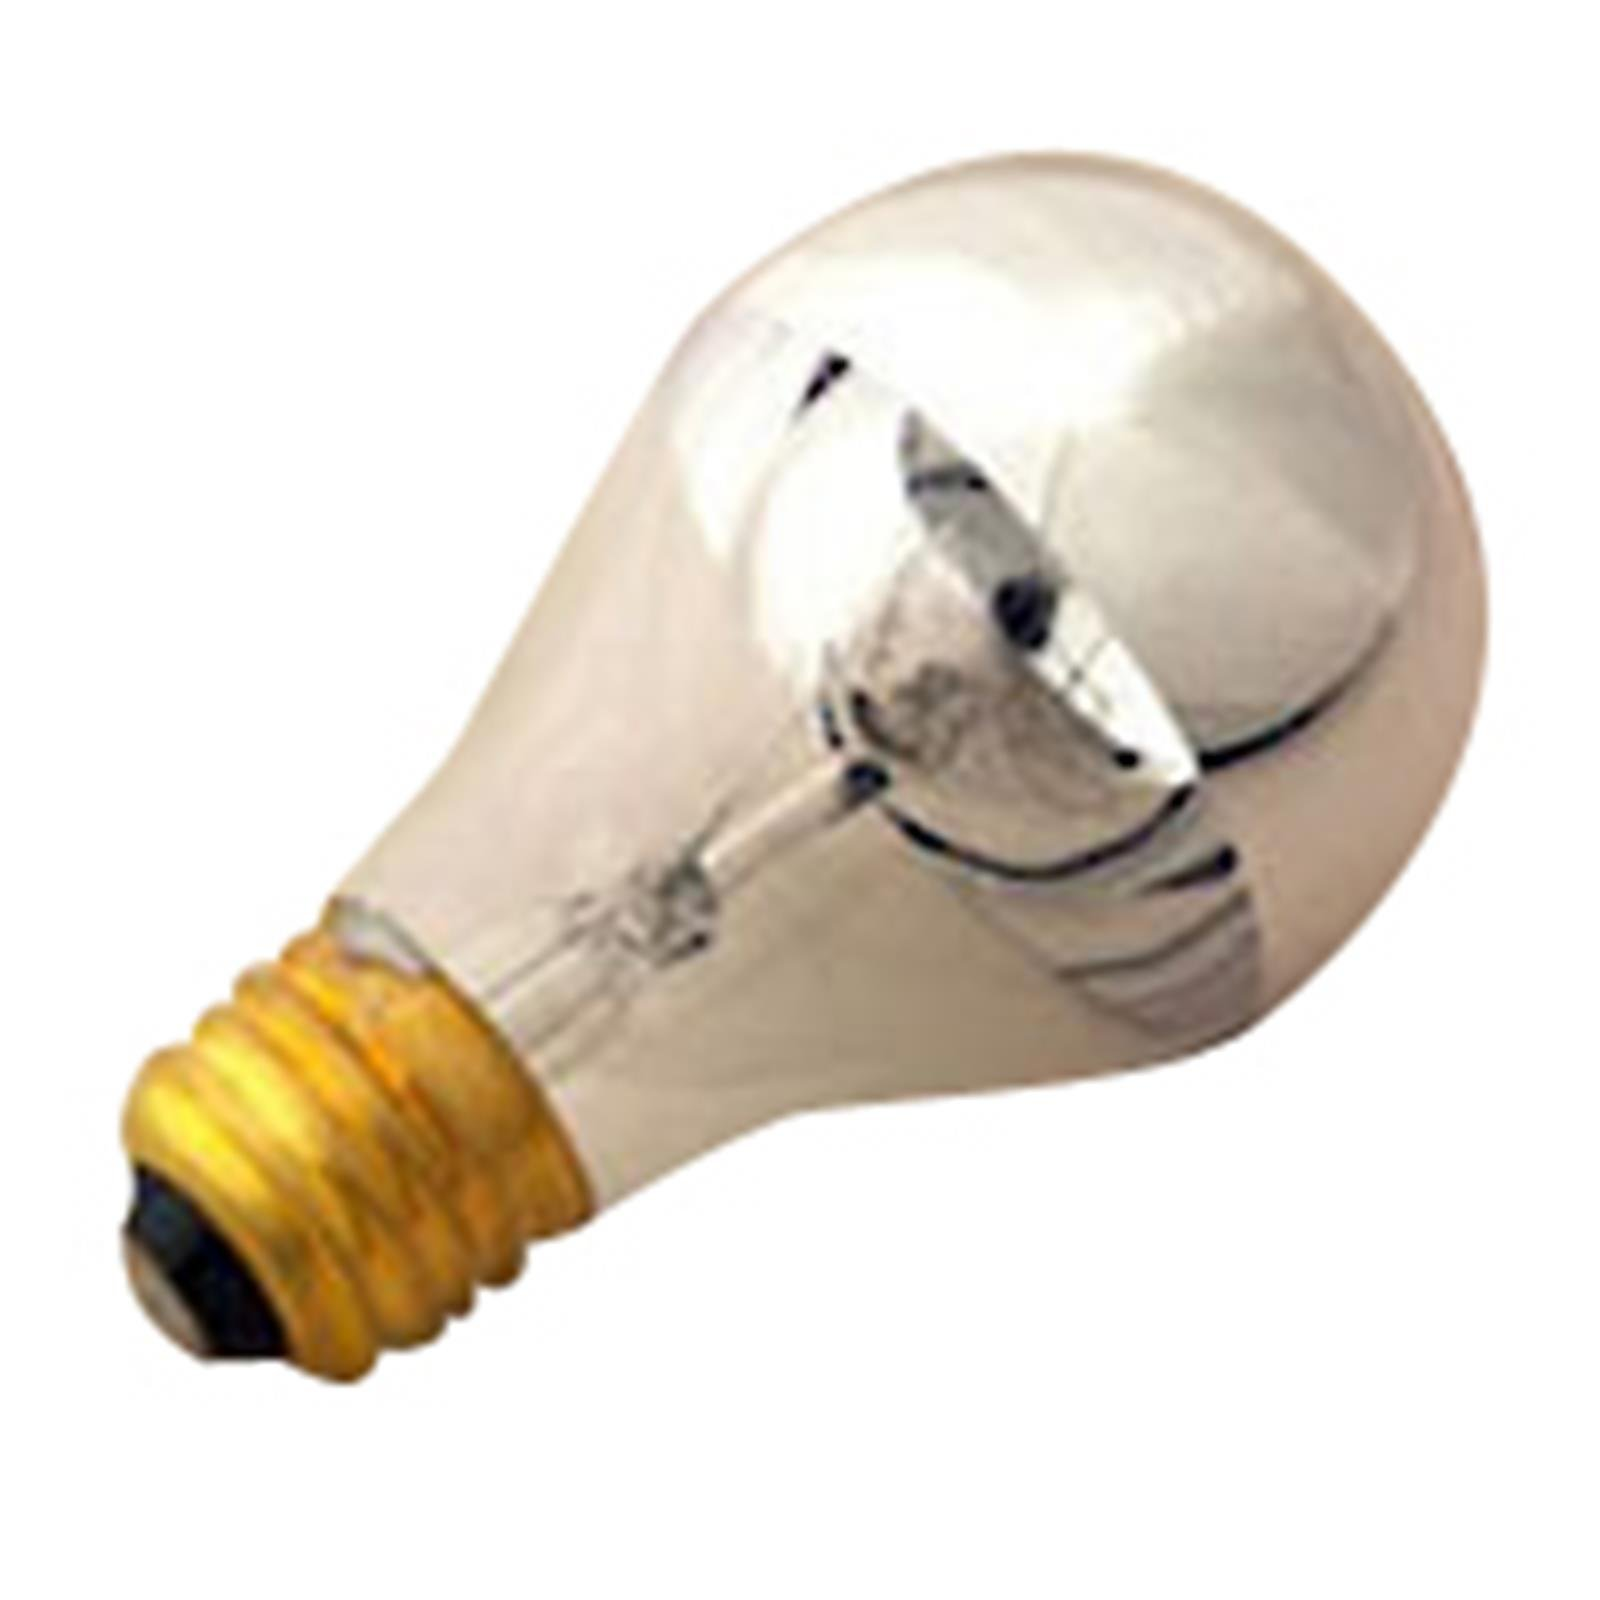 Halco 60w A19 Cl Sil Bowl 130v Prism A19cl60/Sb 60w 130v Incandescent Clear Silver Bowl Prism Lamp Bulb